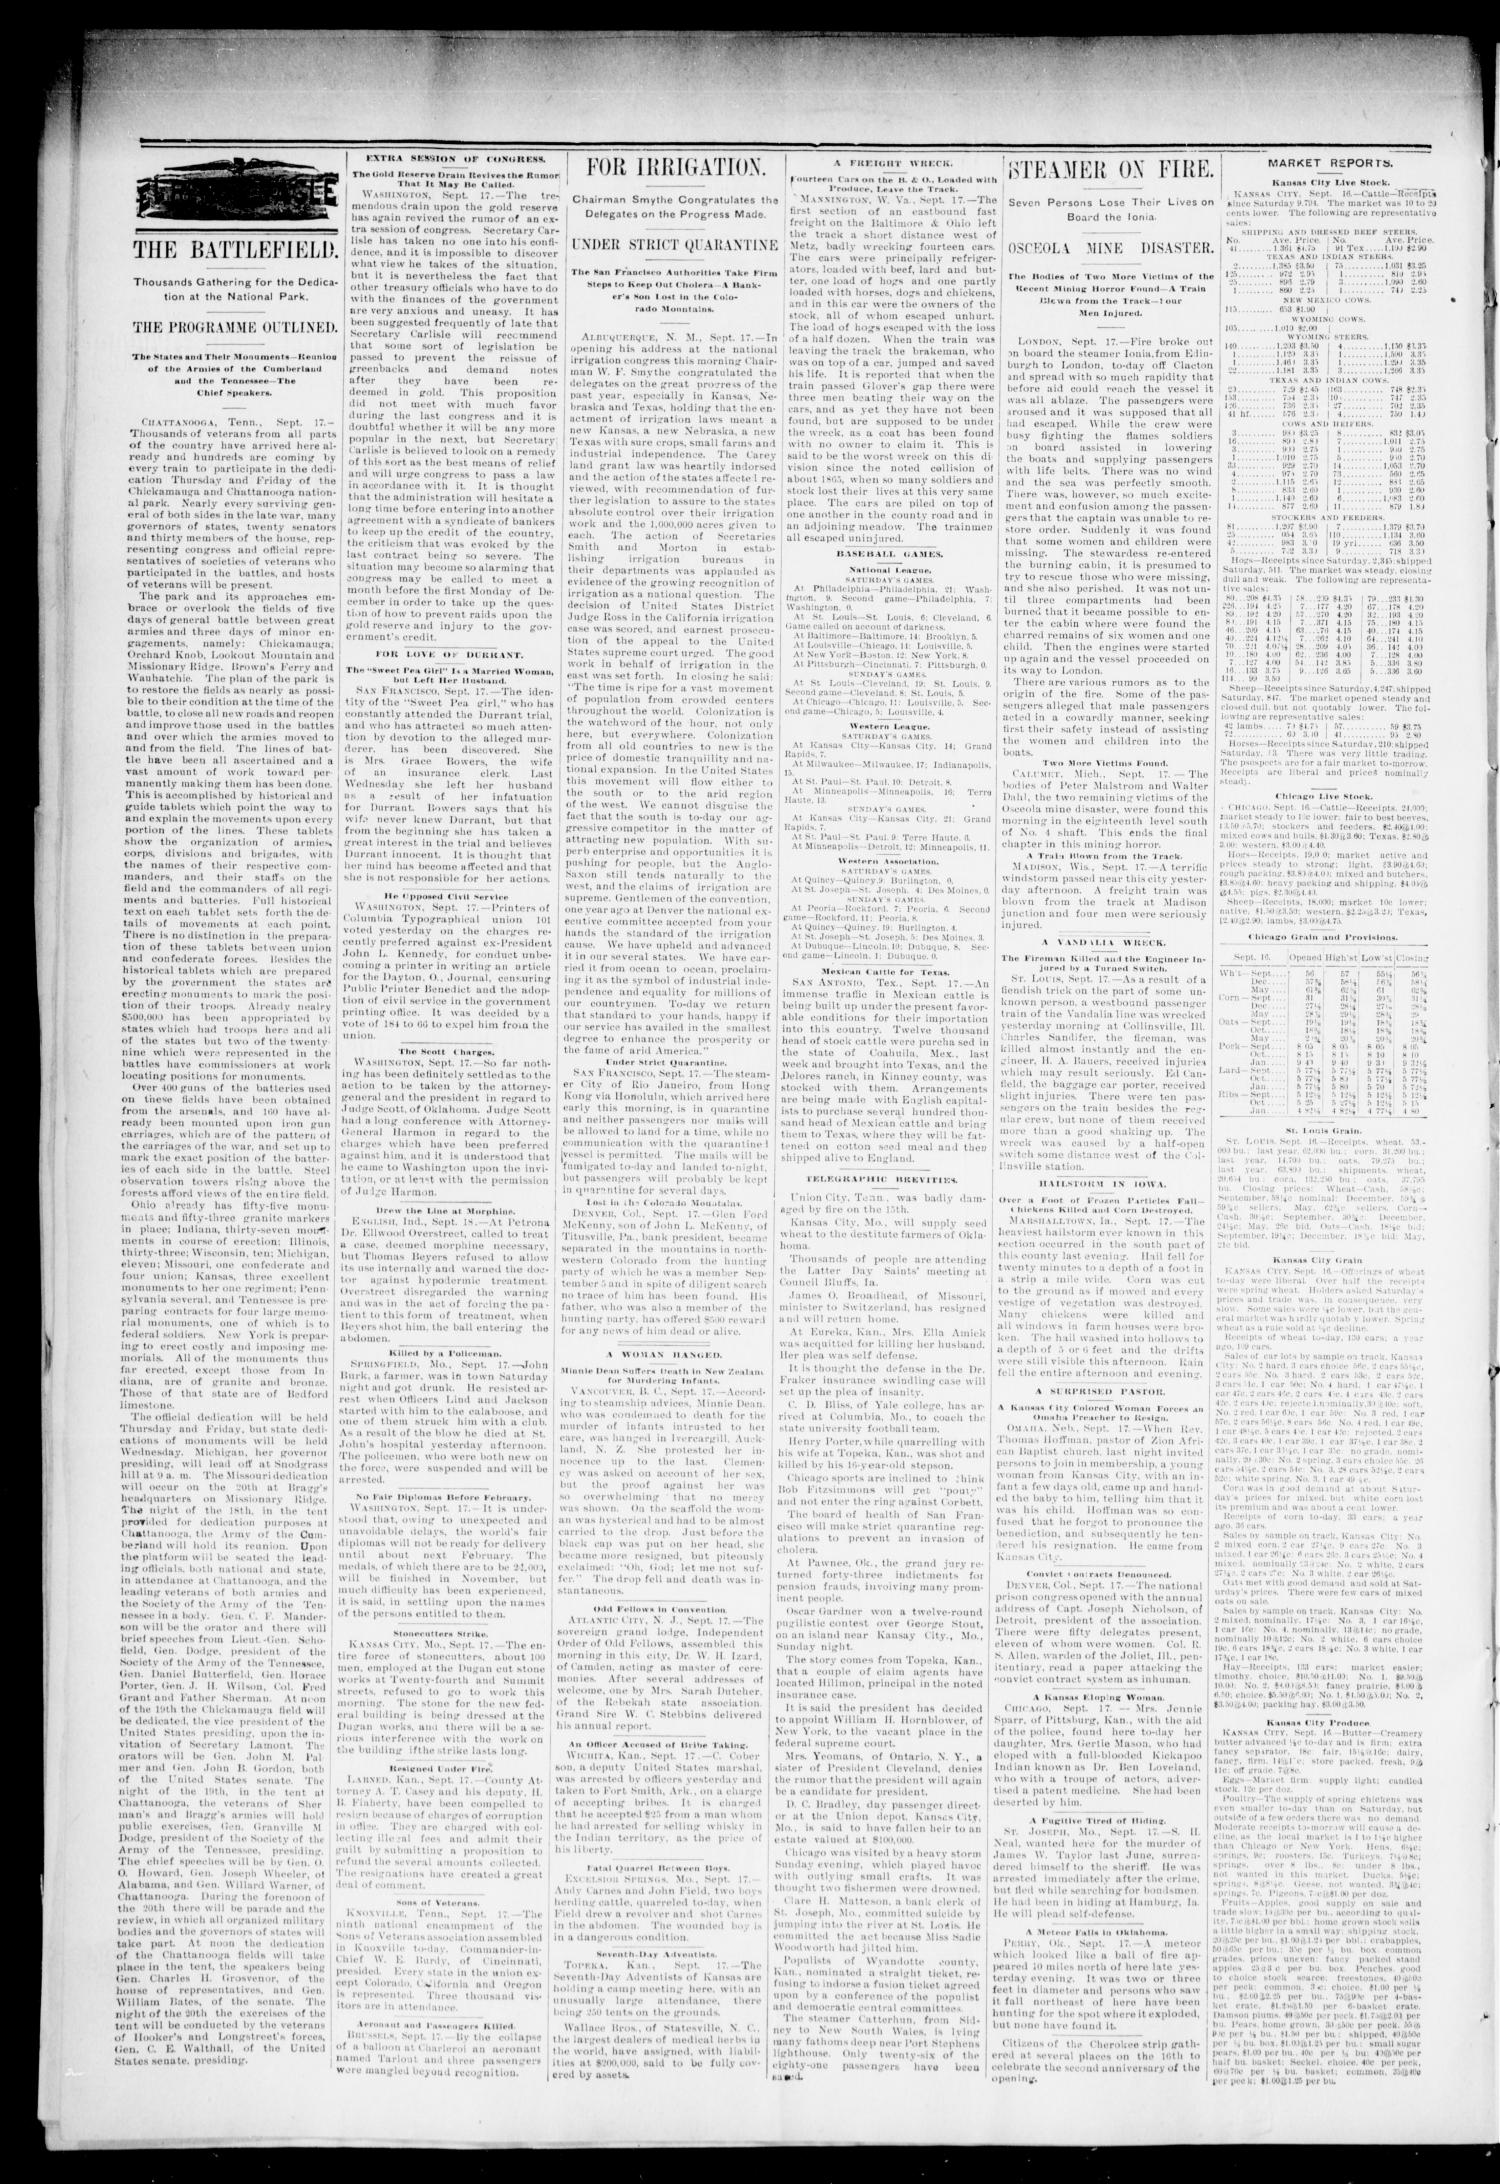 El Reno Daily Eagle. (El Reno, Okla.), Vol. 1, No. 300, Ed. 1 Wednesday, September 18, 1895                                                                                                      [Sequence #]: 2 of 4